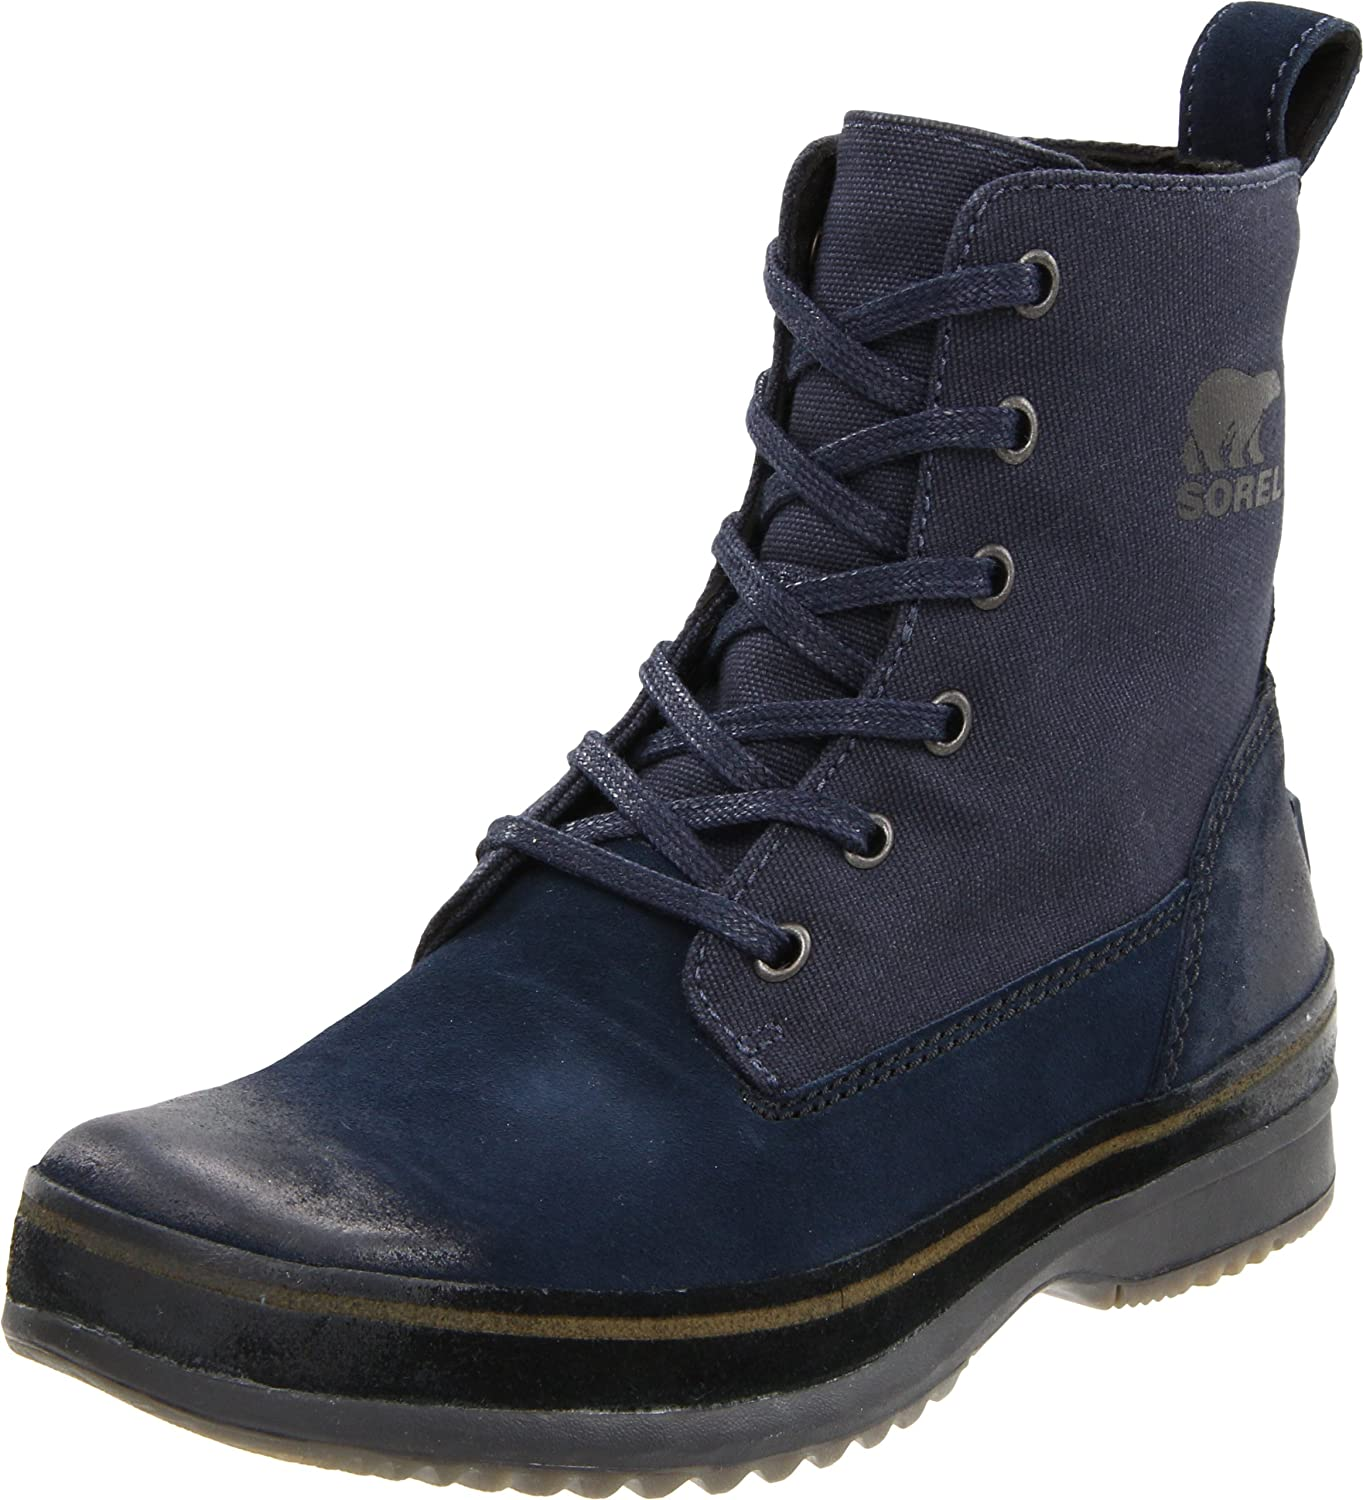 281e9ab3221 Amazon.com | Sorel Men's Woodbine Surplus Boot | Motorcycle & Combat